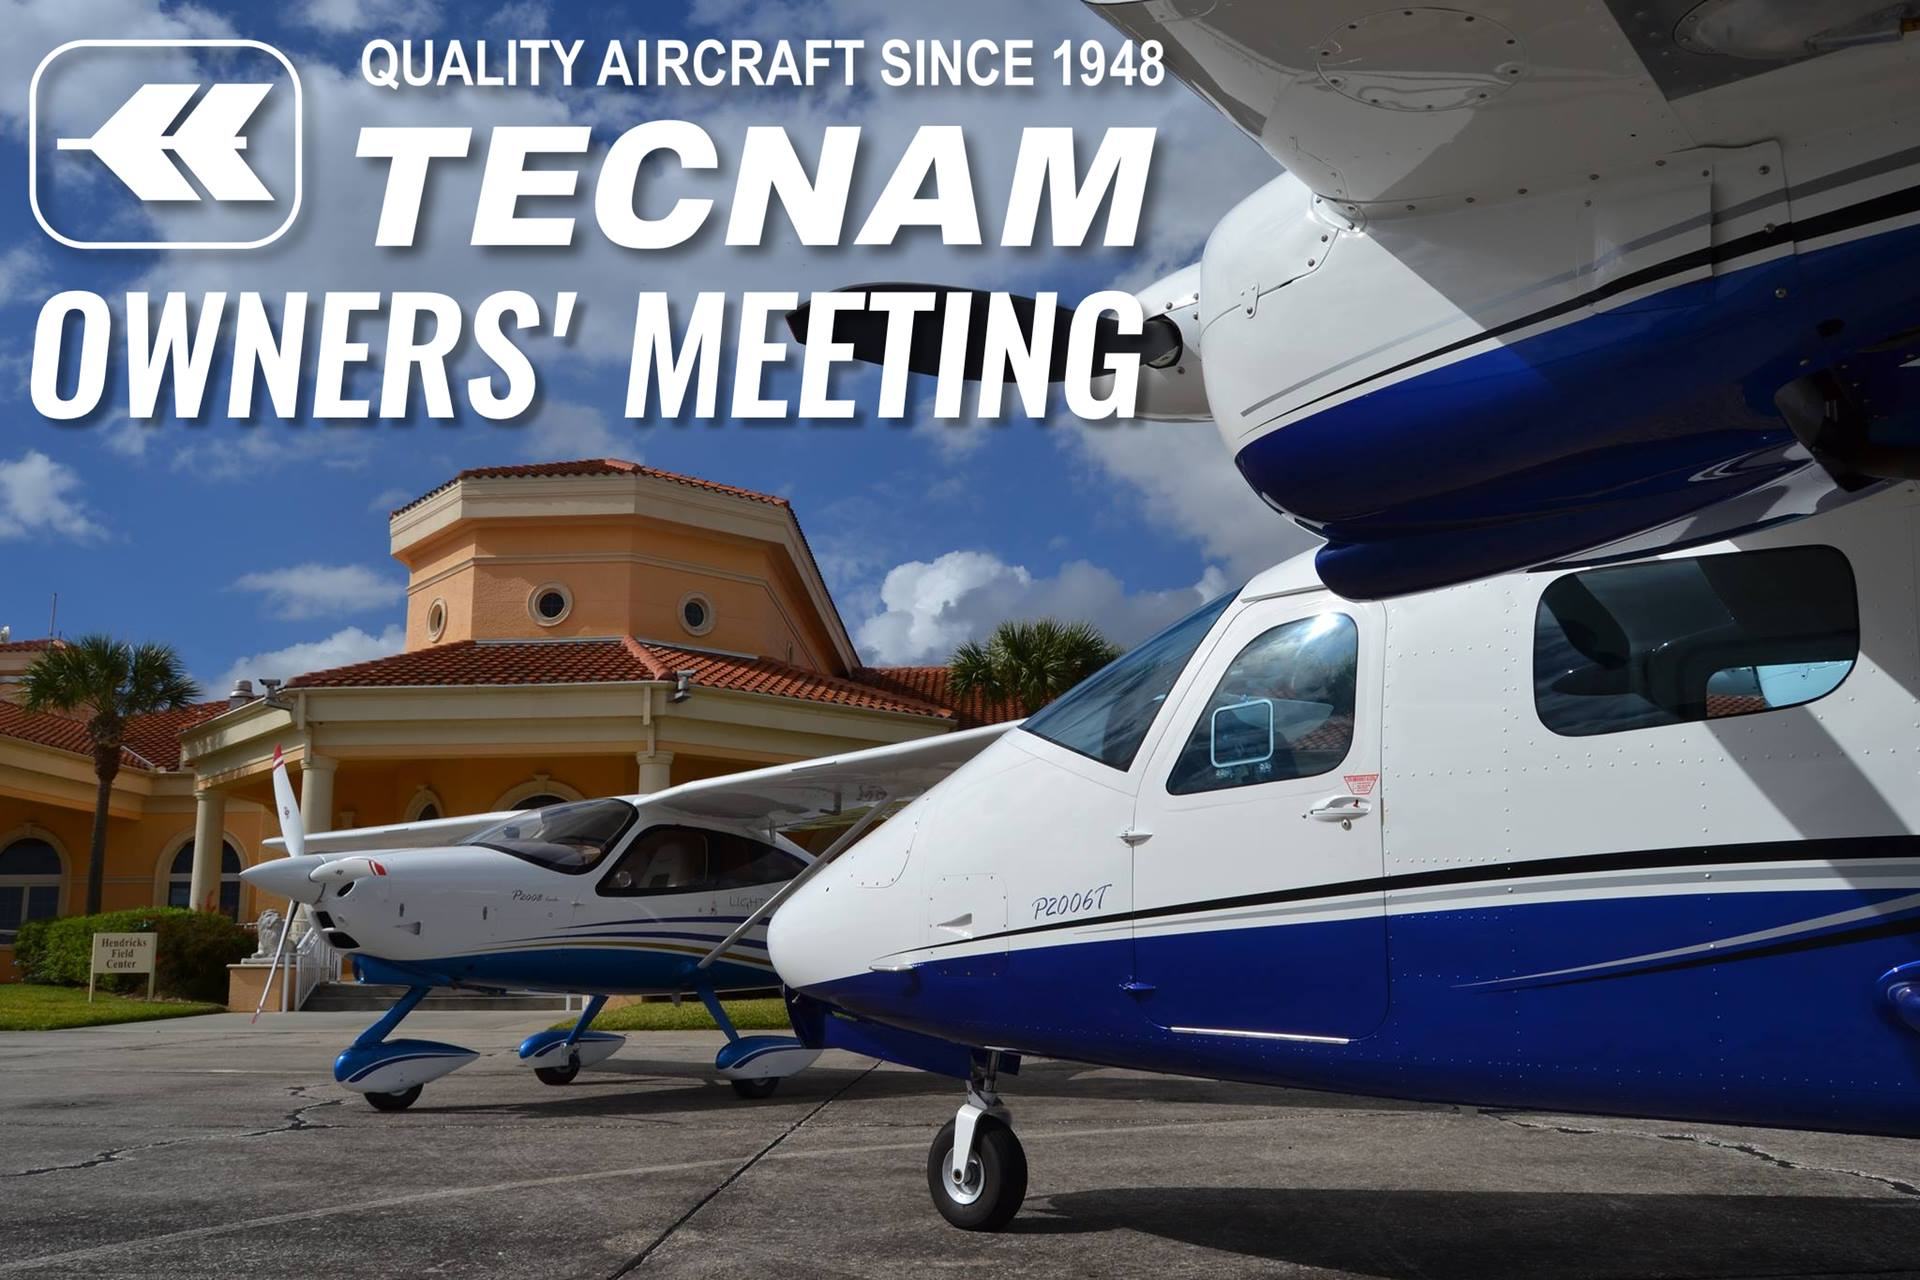 Tecnam Owners' Meeting